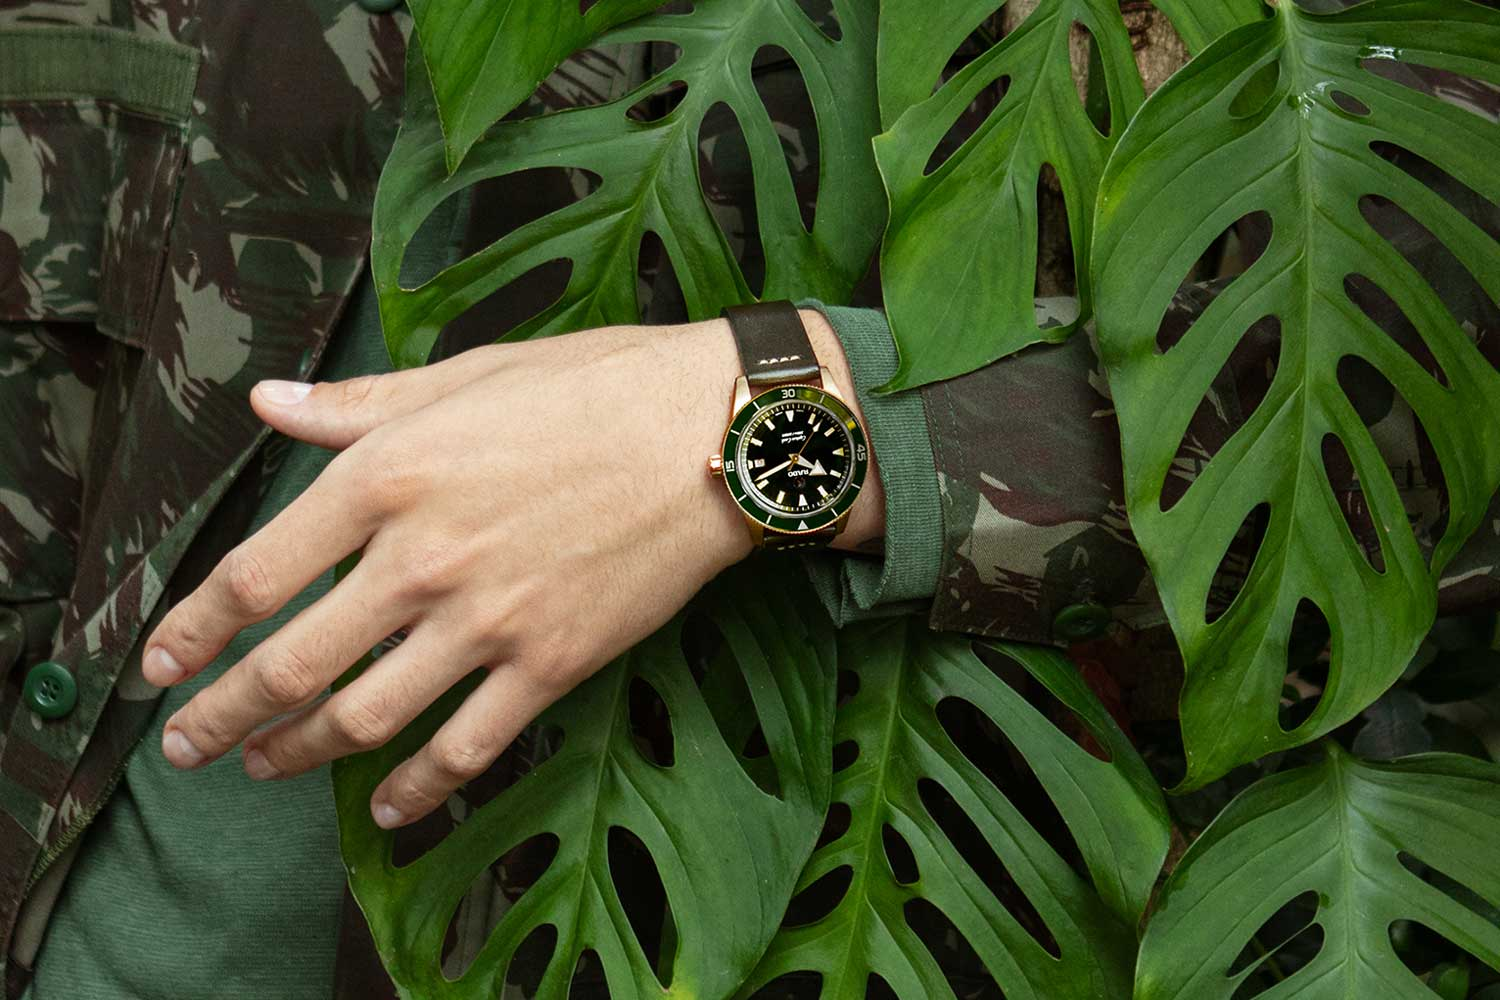 While there are no specs on this Rado Captain Cook watch as yet, it appears to be a bronze model with green ceramic bezel and dial, sized at 42mm